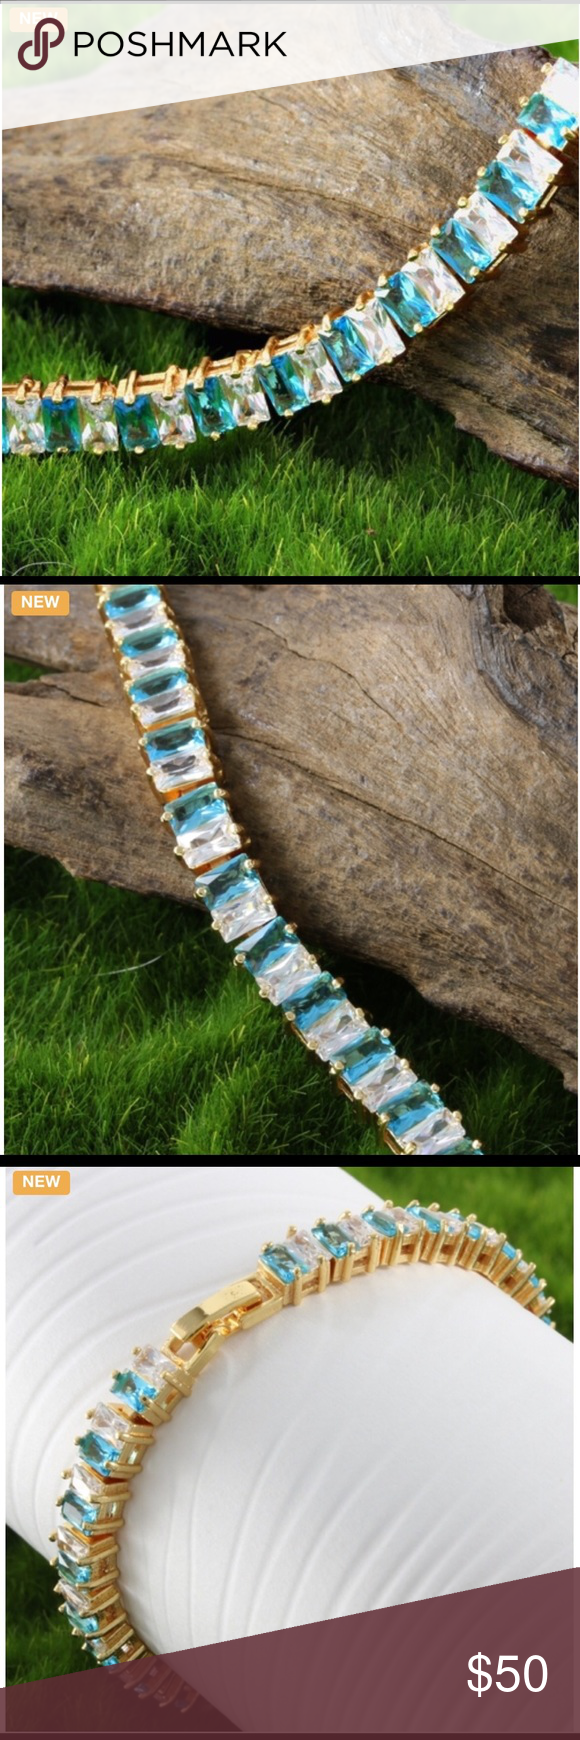 Blue and White Topaz Bracelet This beautiful bracelet has 8.75ctw of genuine blue and white topaz set in 14k yellow gold filled Jewelry Bracelets